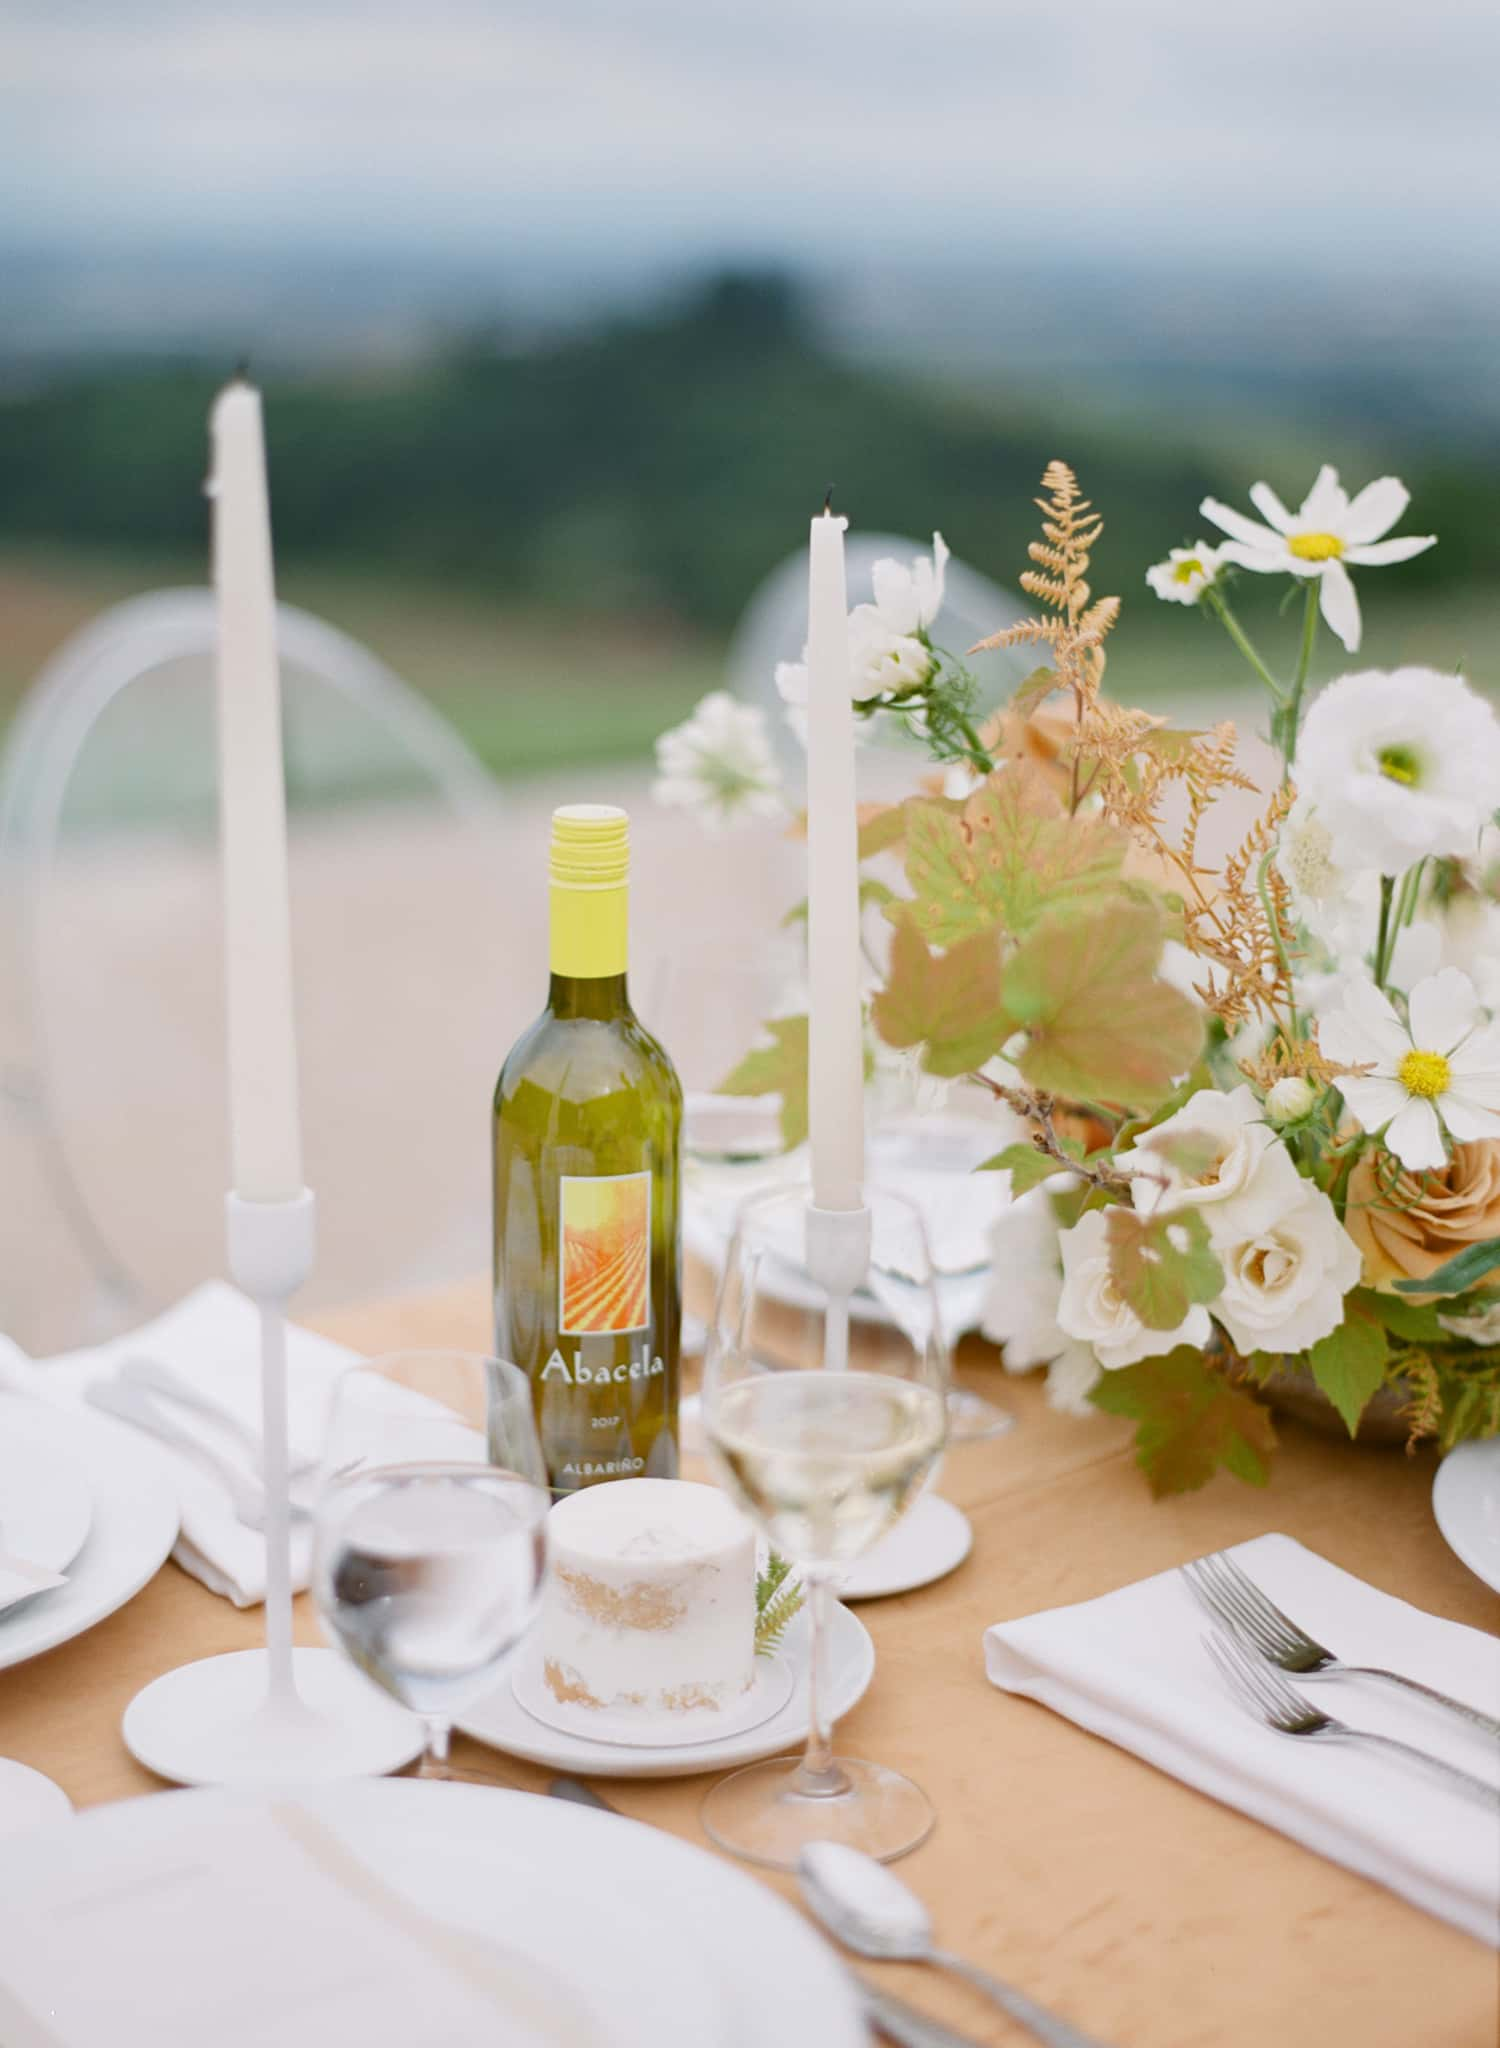 Oregon wine sourced for Portland Bride and Groom